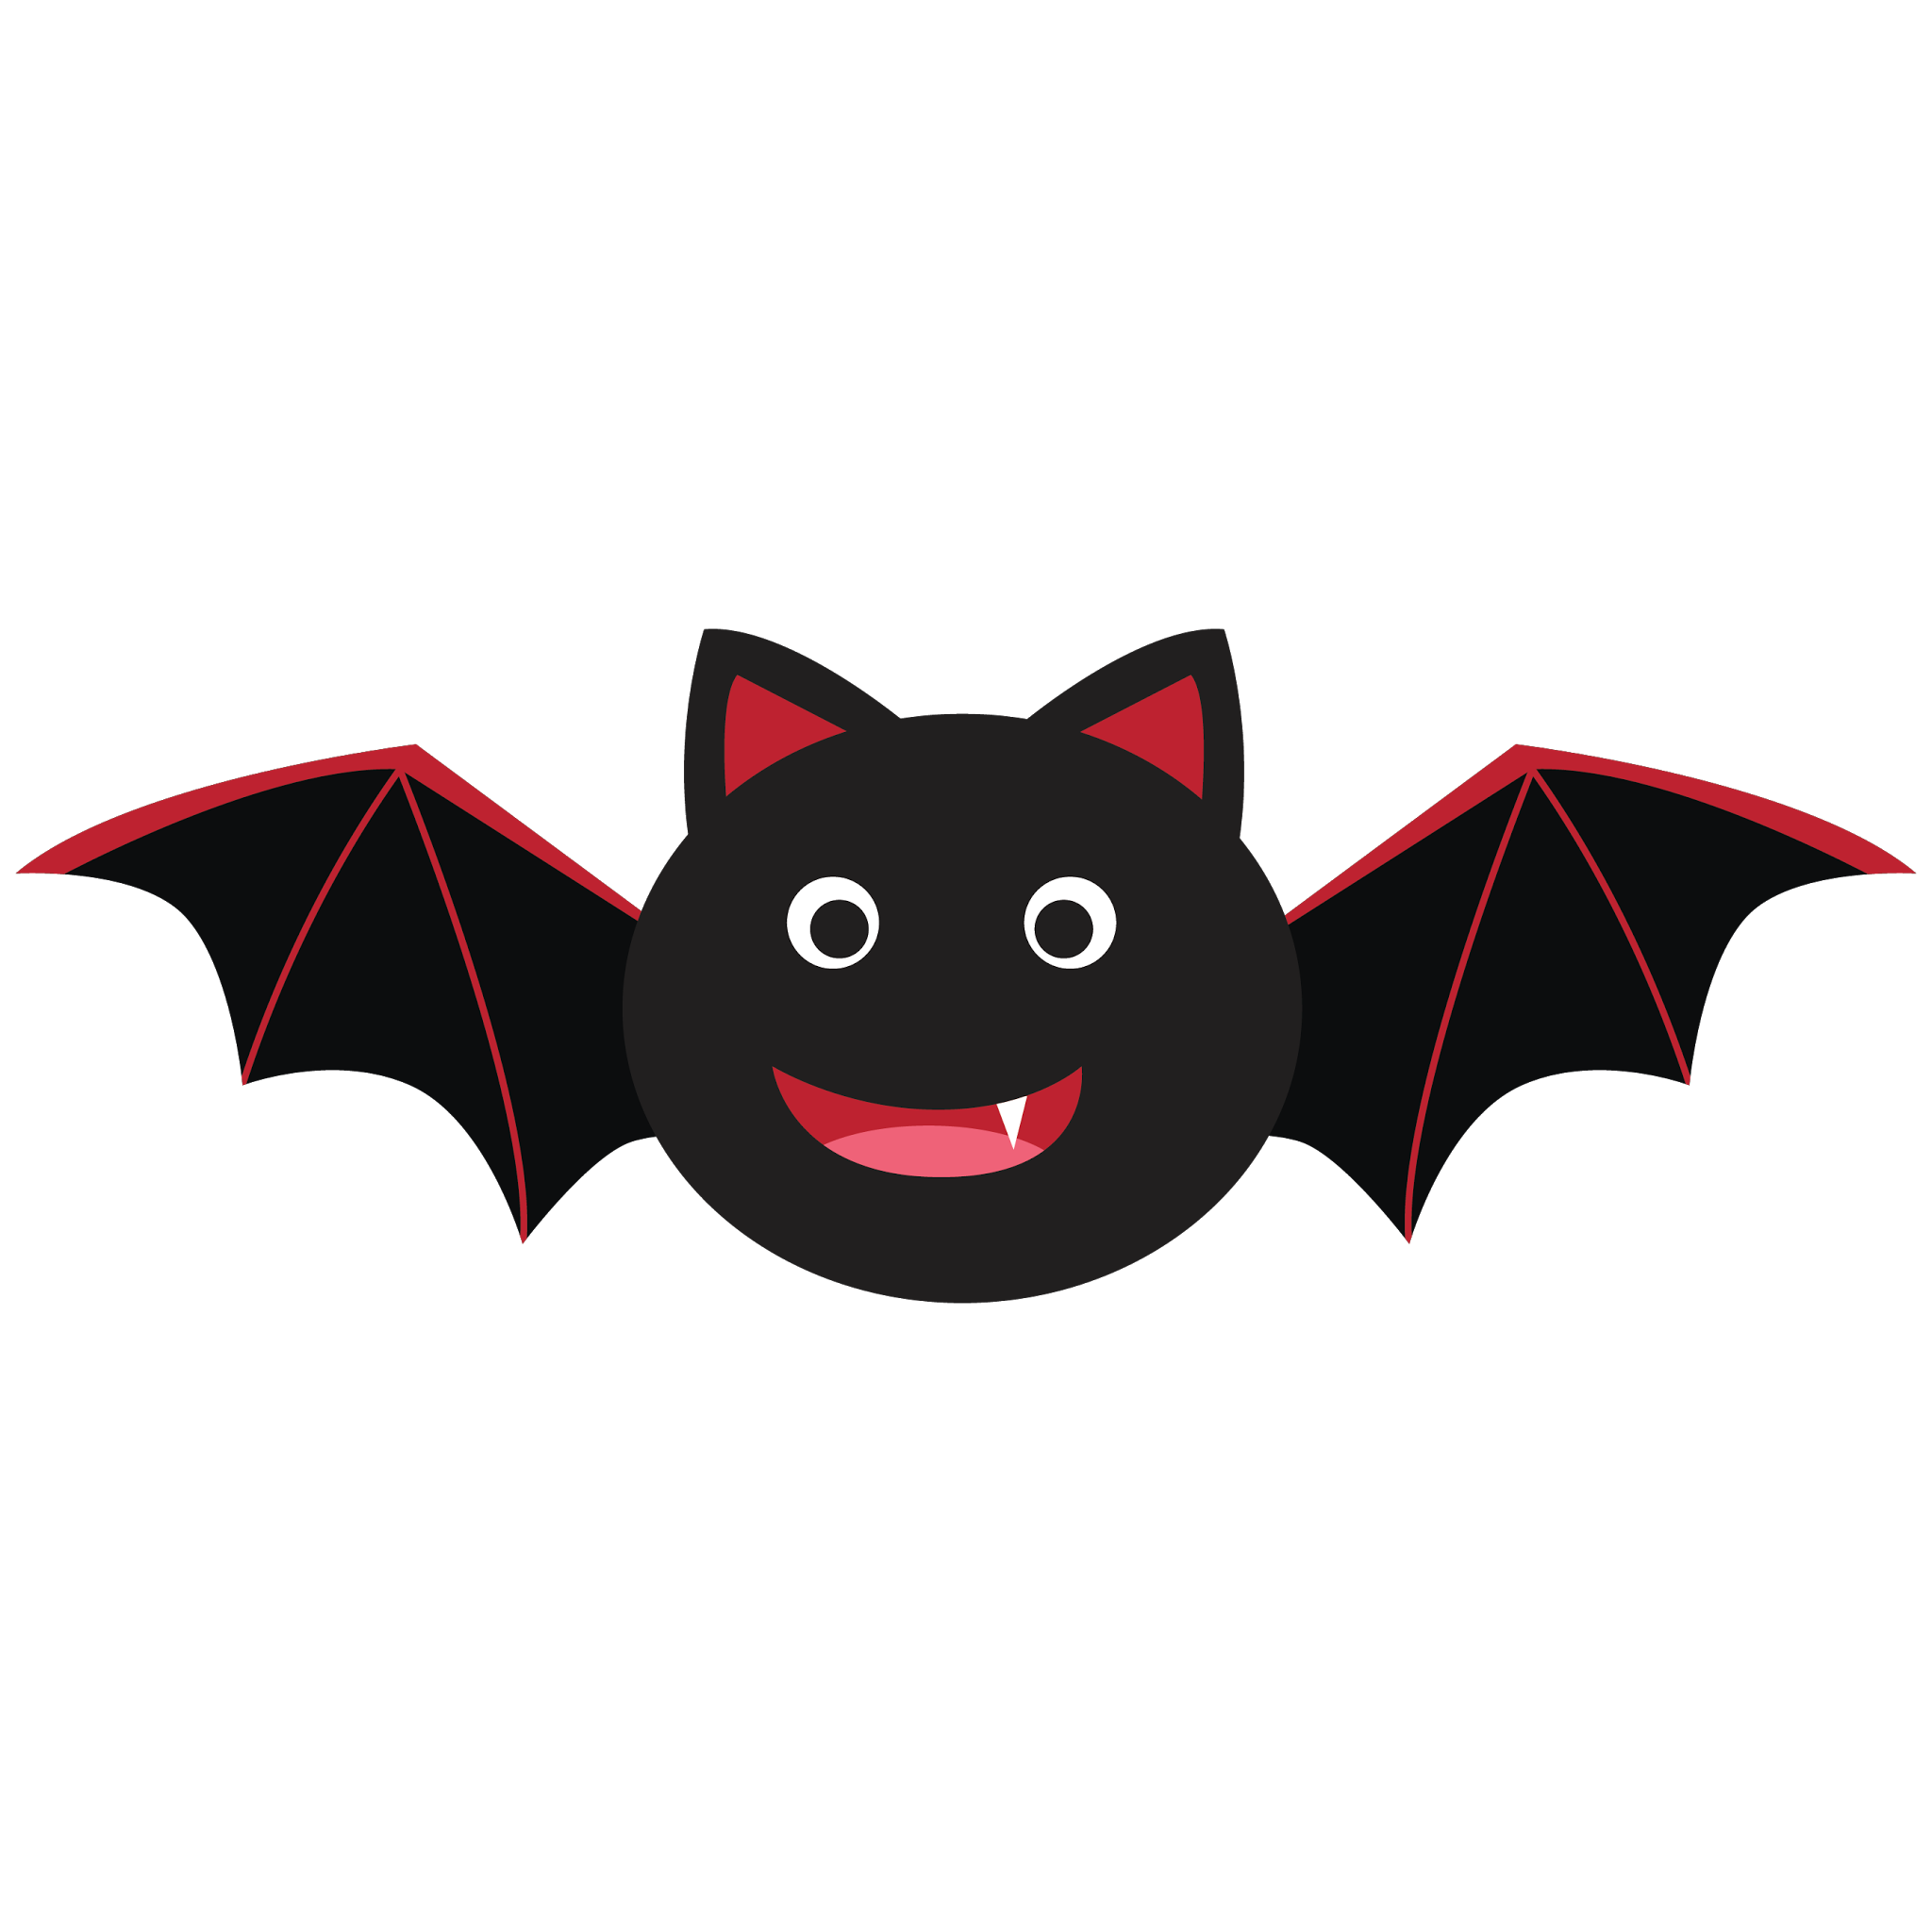 jpg stock  collection of cute. Vampire transparent halloween